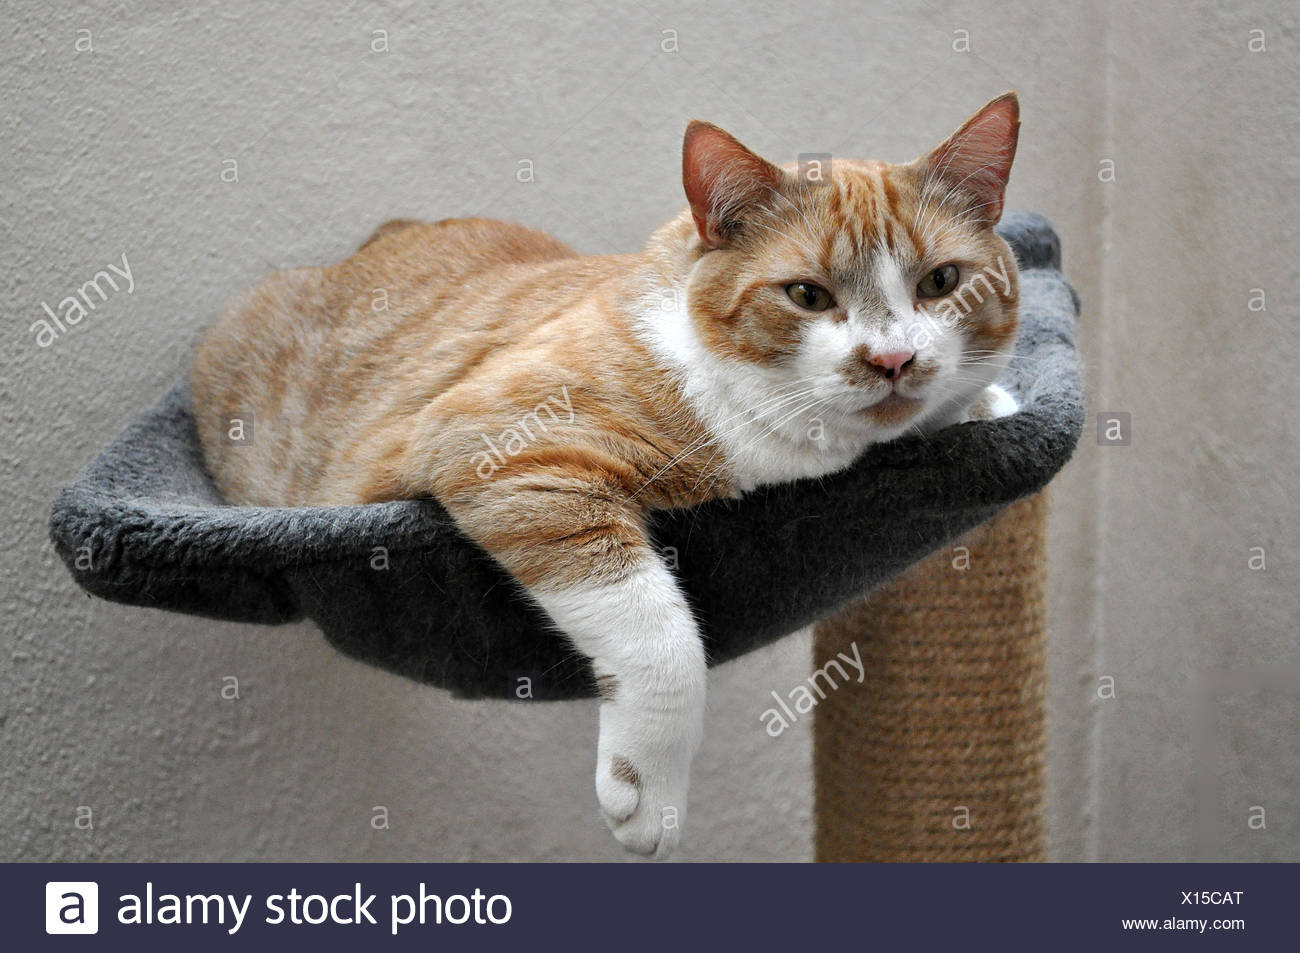 hammock pussycat cat Stock Photo